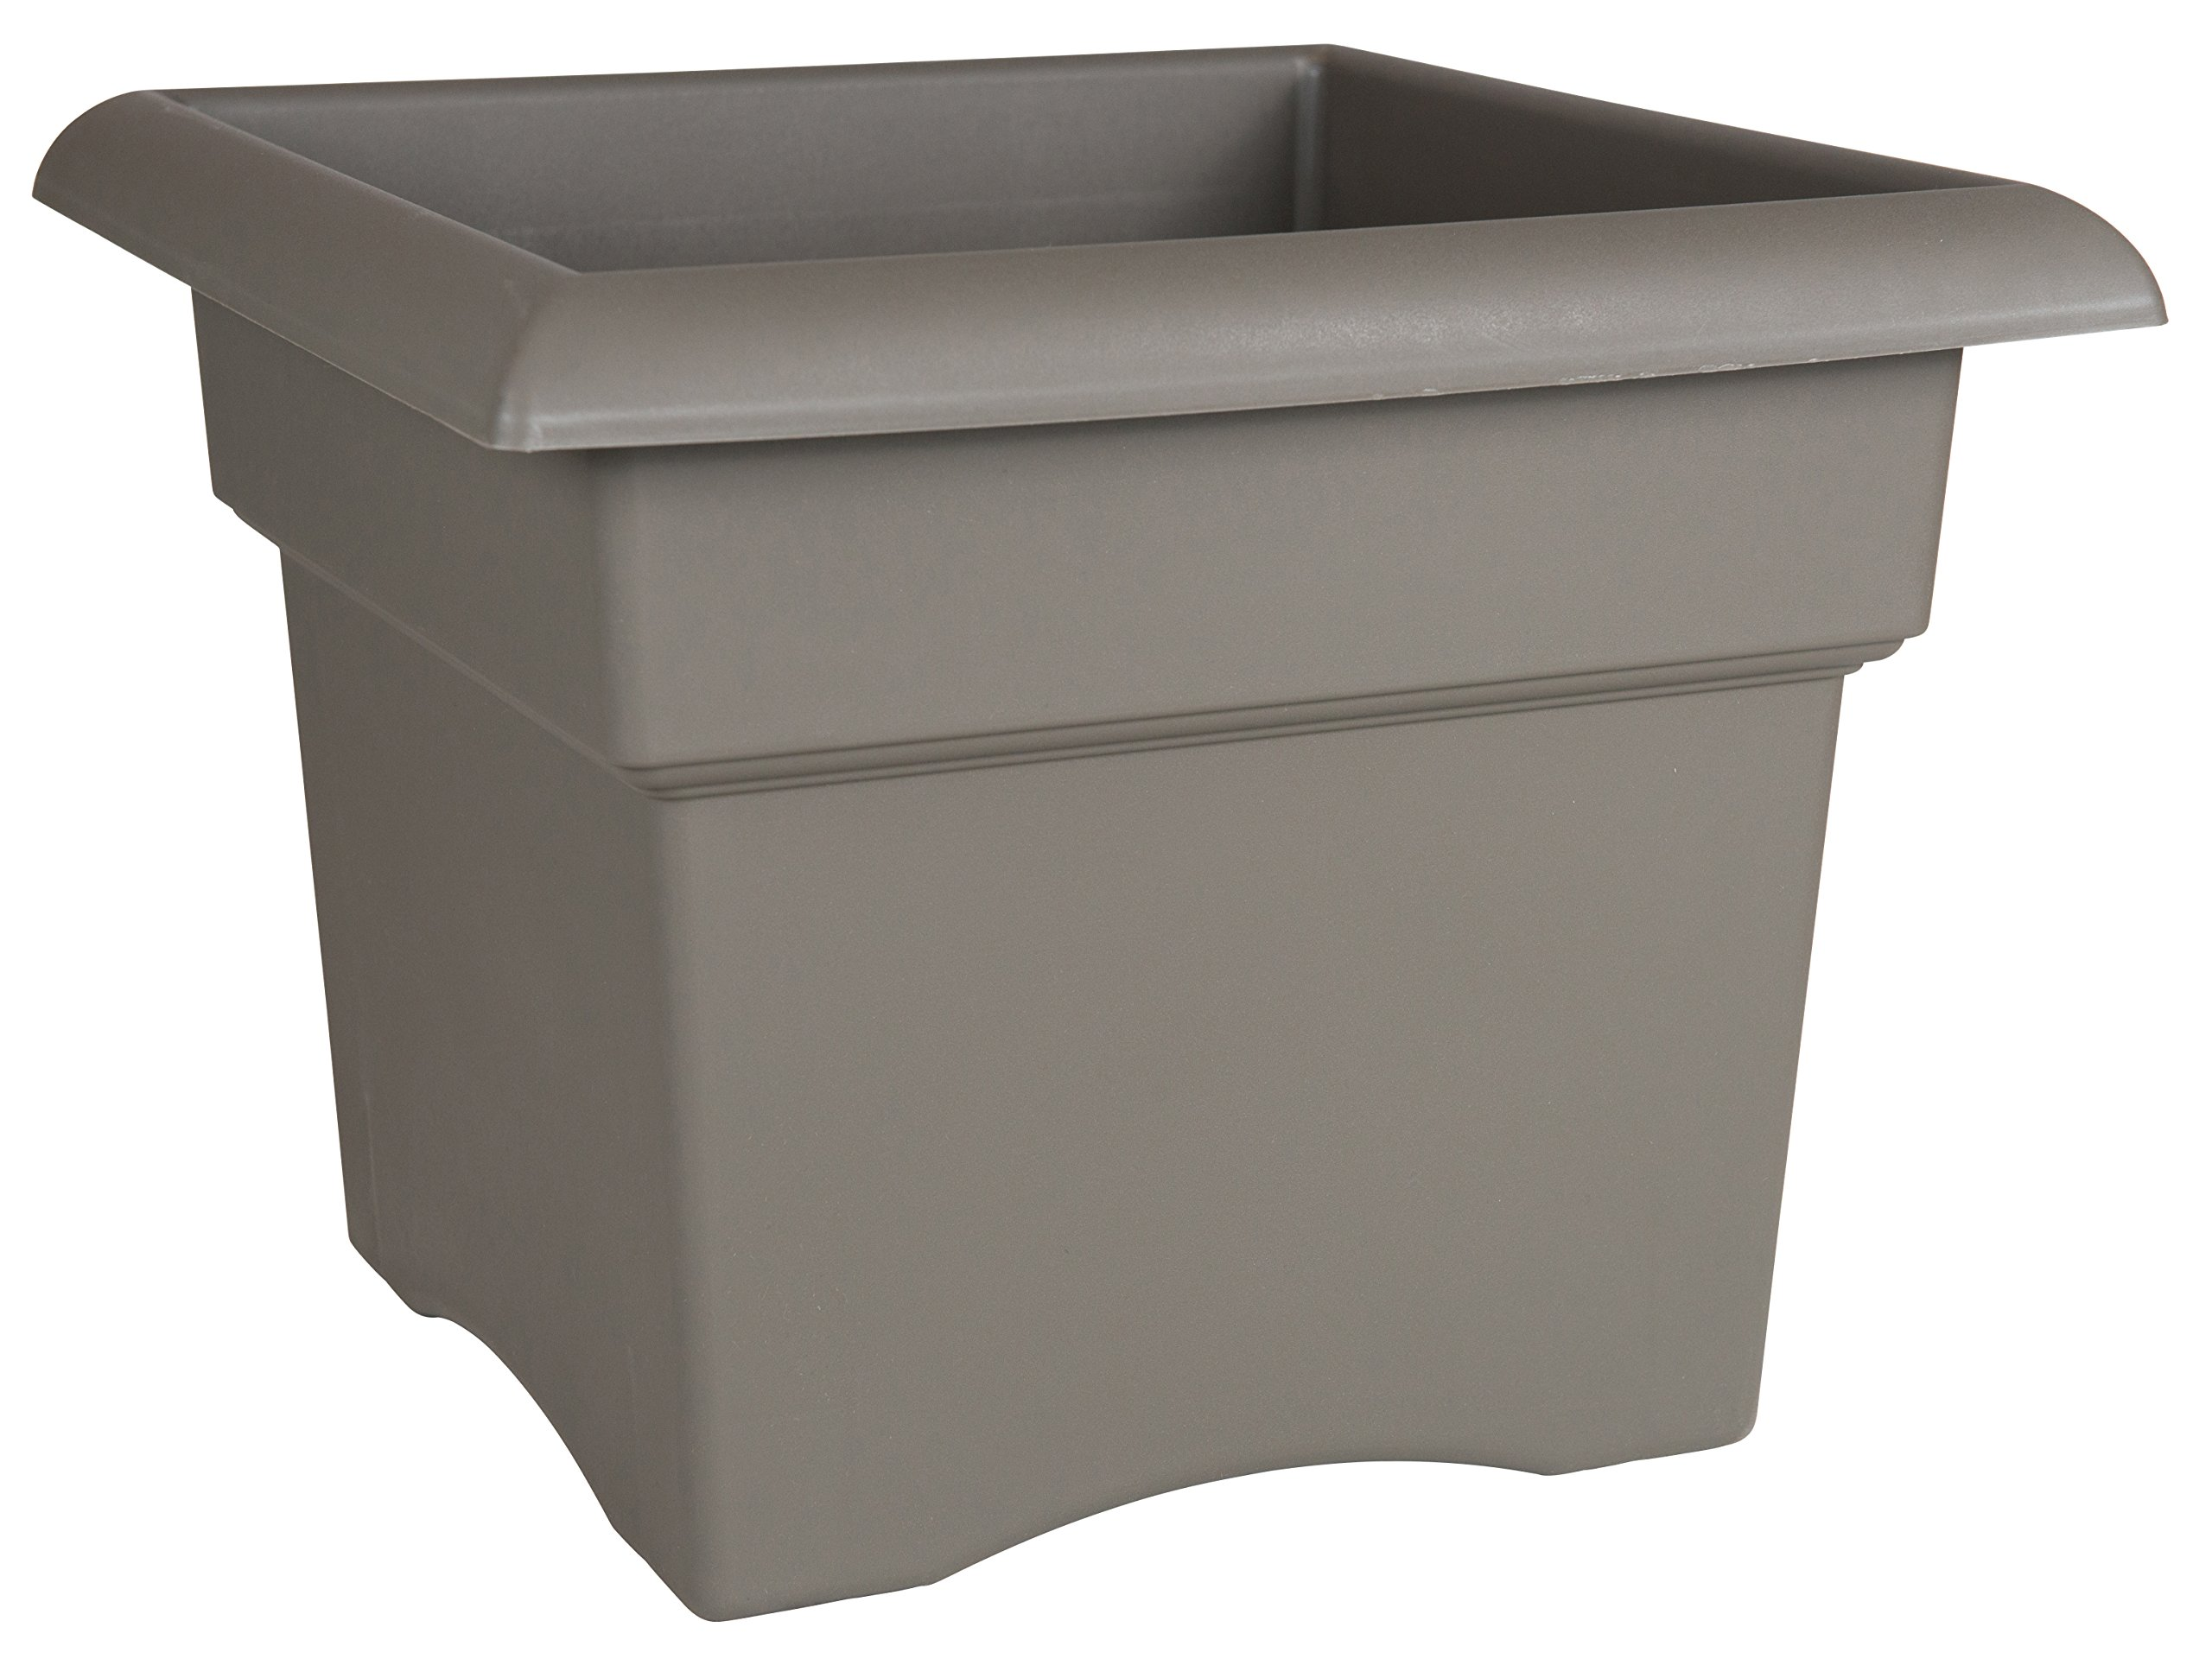 Bloem Fiskars 18 Inch Veranda 5 Gallon Box Planter, Color Cement (57718)